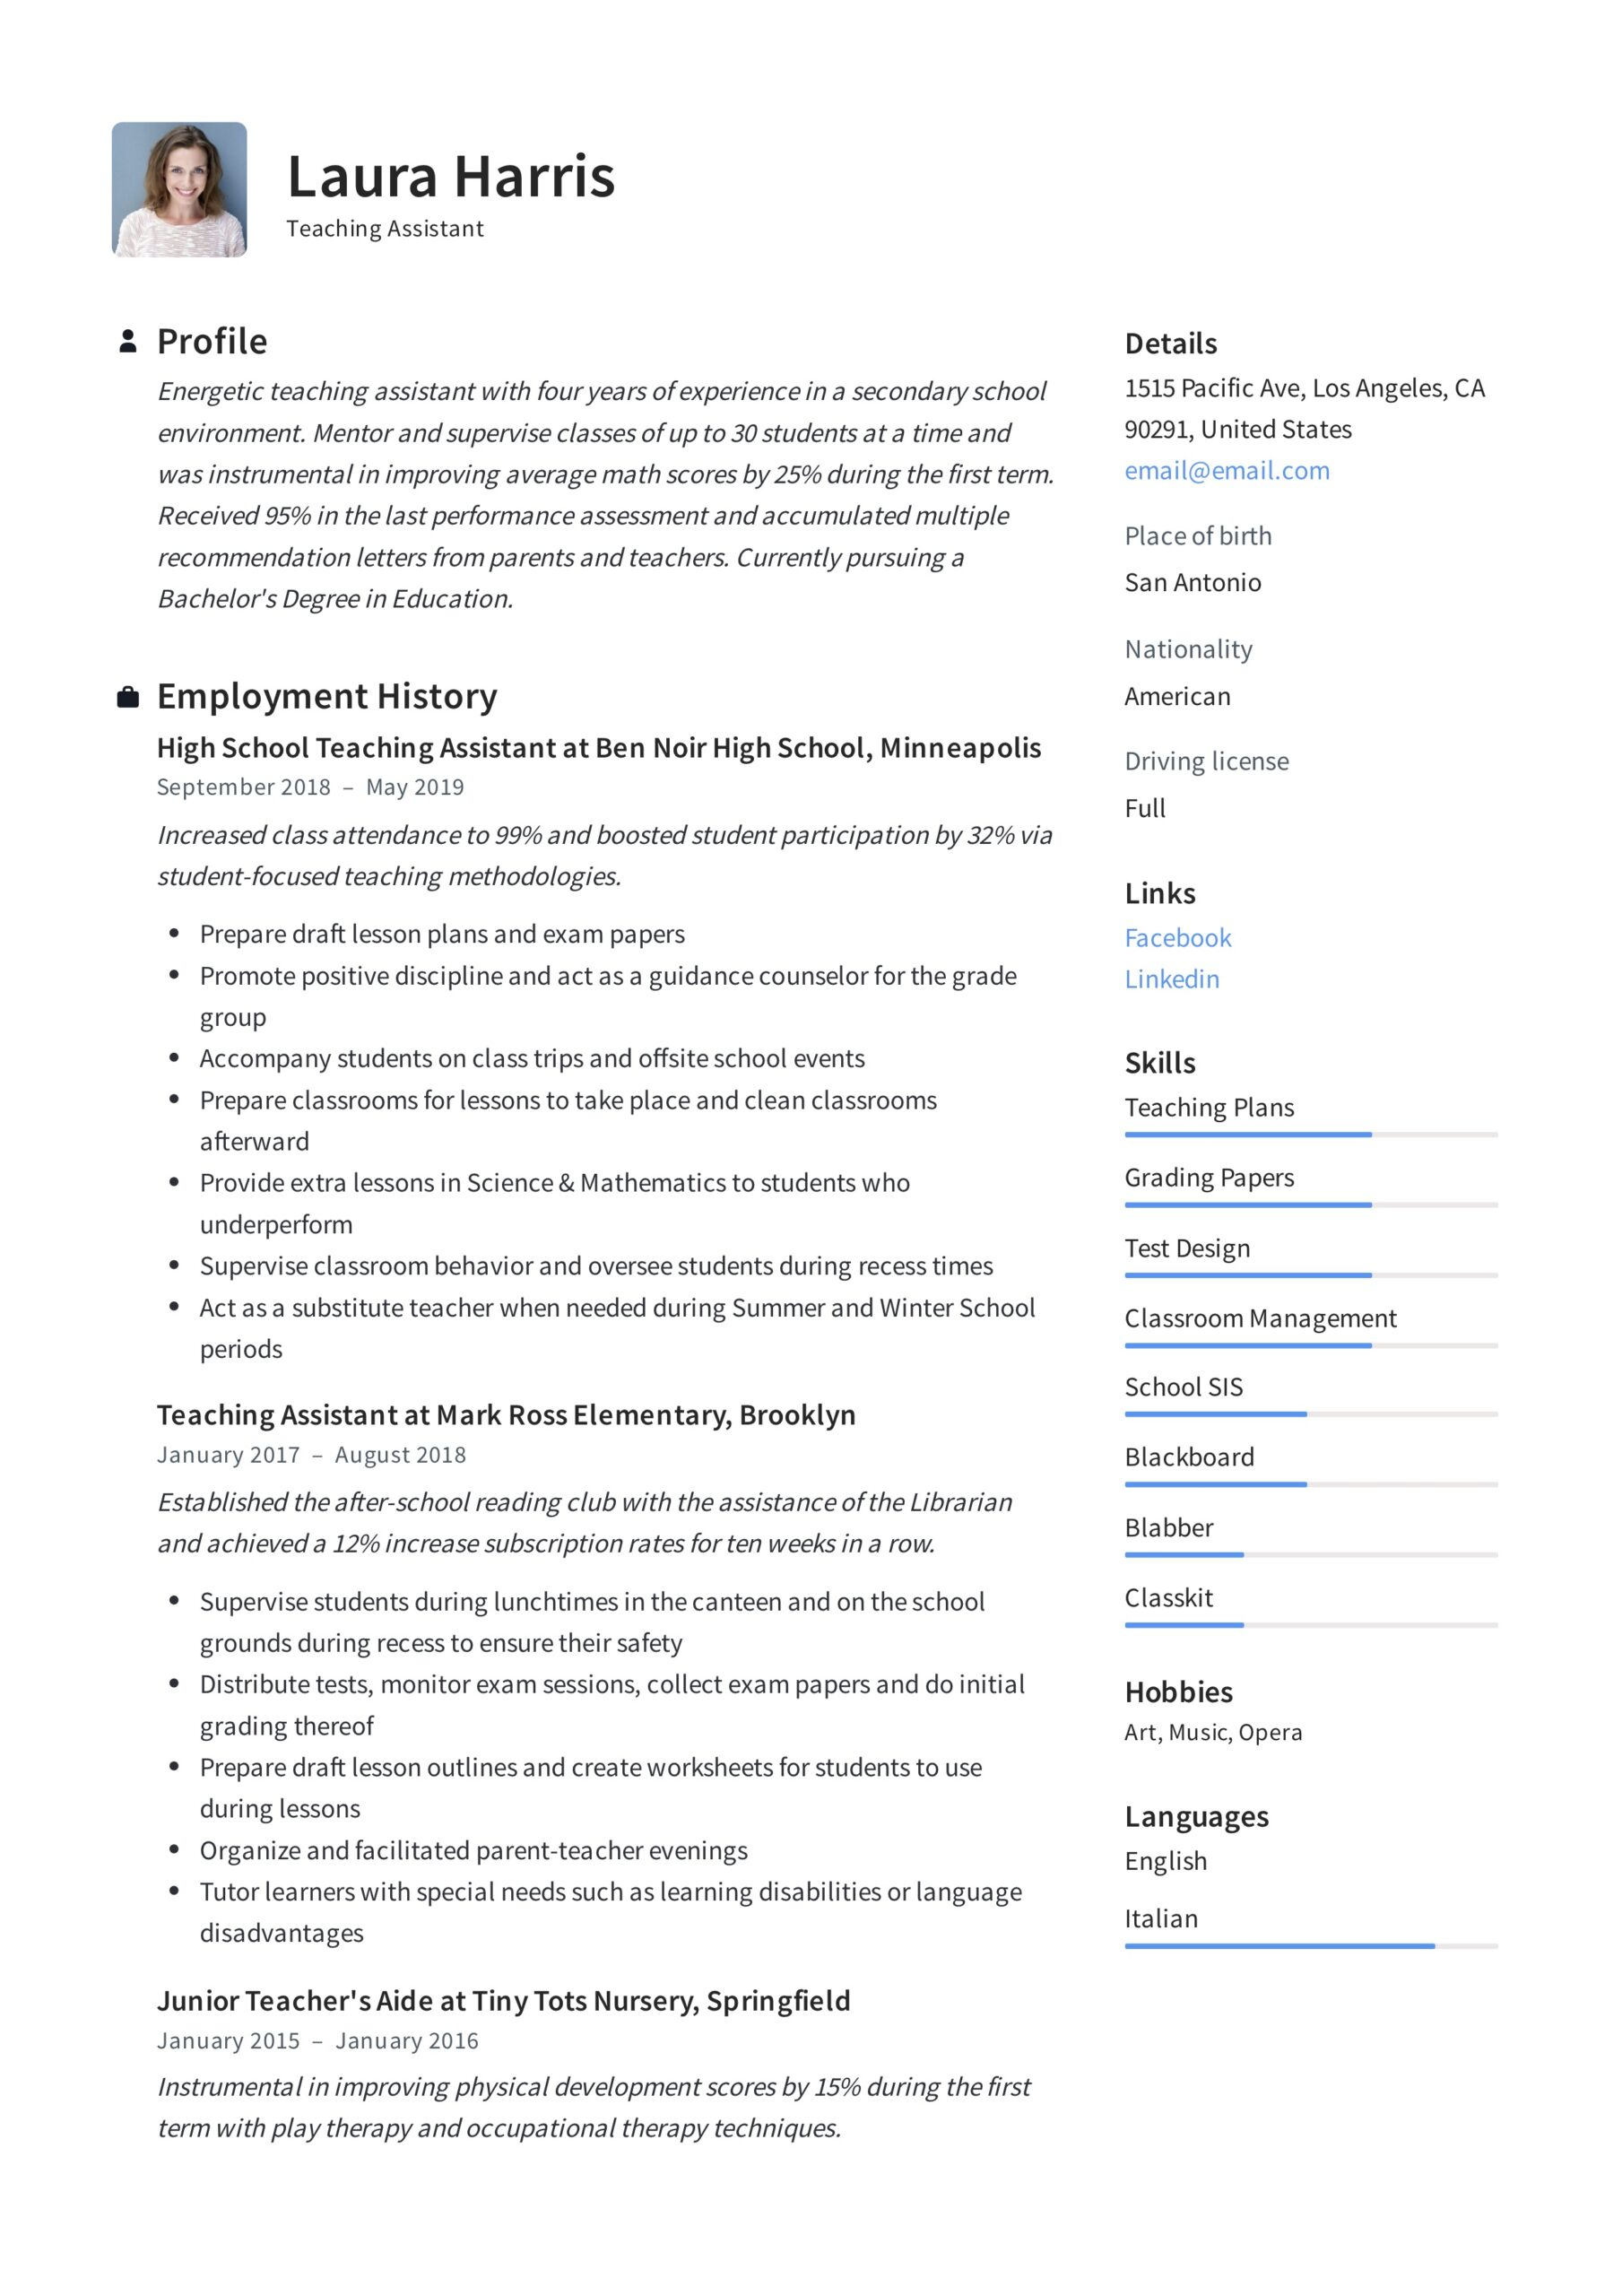 teaching assistant resume writing guide templates pdf elementary teacher template scanner Resume Elementary Teacher Assistant Resume